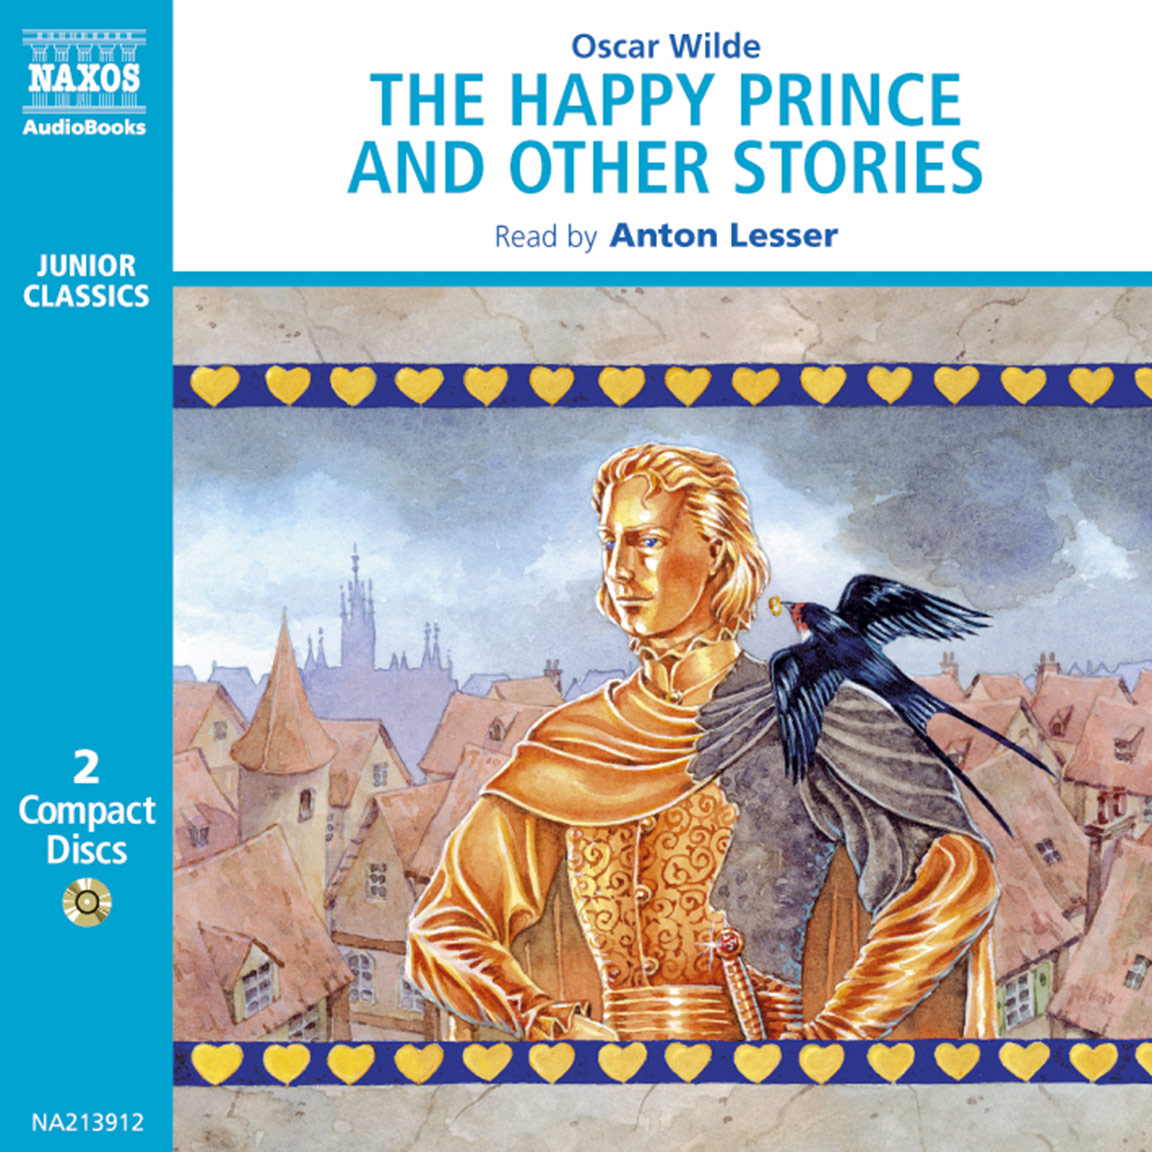 the happy prince by oscar wilde 2 essay Symbolism is a literary form that is favored by wilde and it is widely implied in the happy prince so much so, that some of the character itself are symbols such as the swallow the swallow as seen in the story, have a meeting with its colony in egypt but it choose to remain with the prince and help him fulfill his wishes until the prince is.